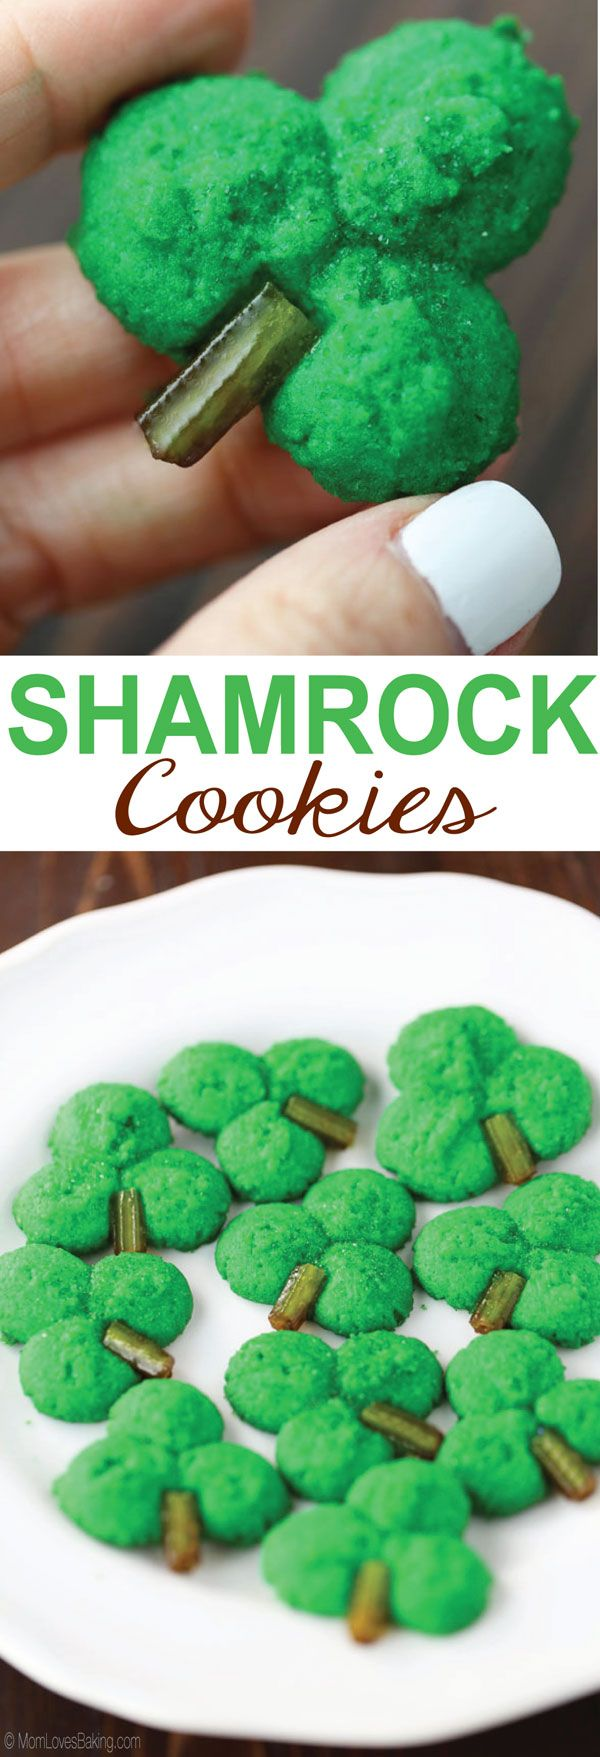 Shamrock Cookie Press Cookies are green, butter cookies with a hint of almond and a candy stem. Find the recipe on http://www.MomLovesBaking.com